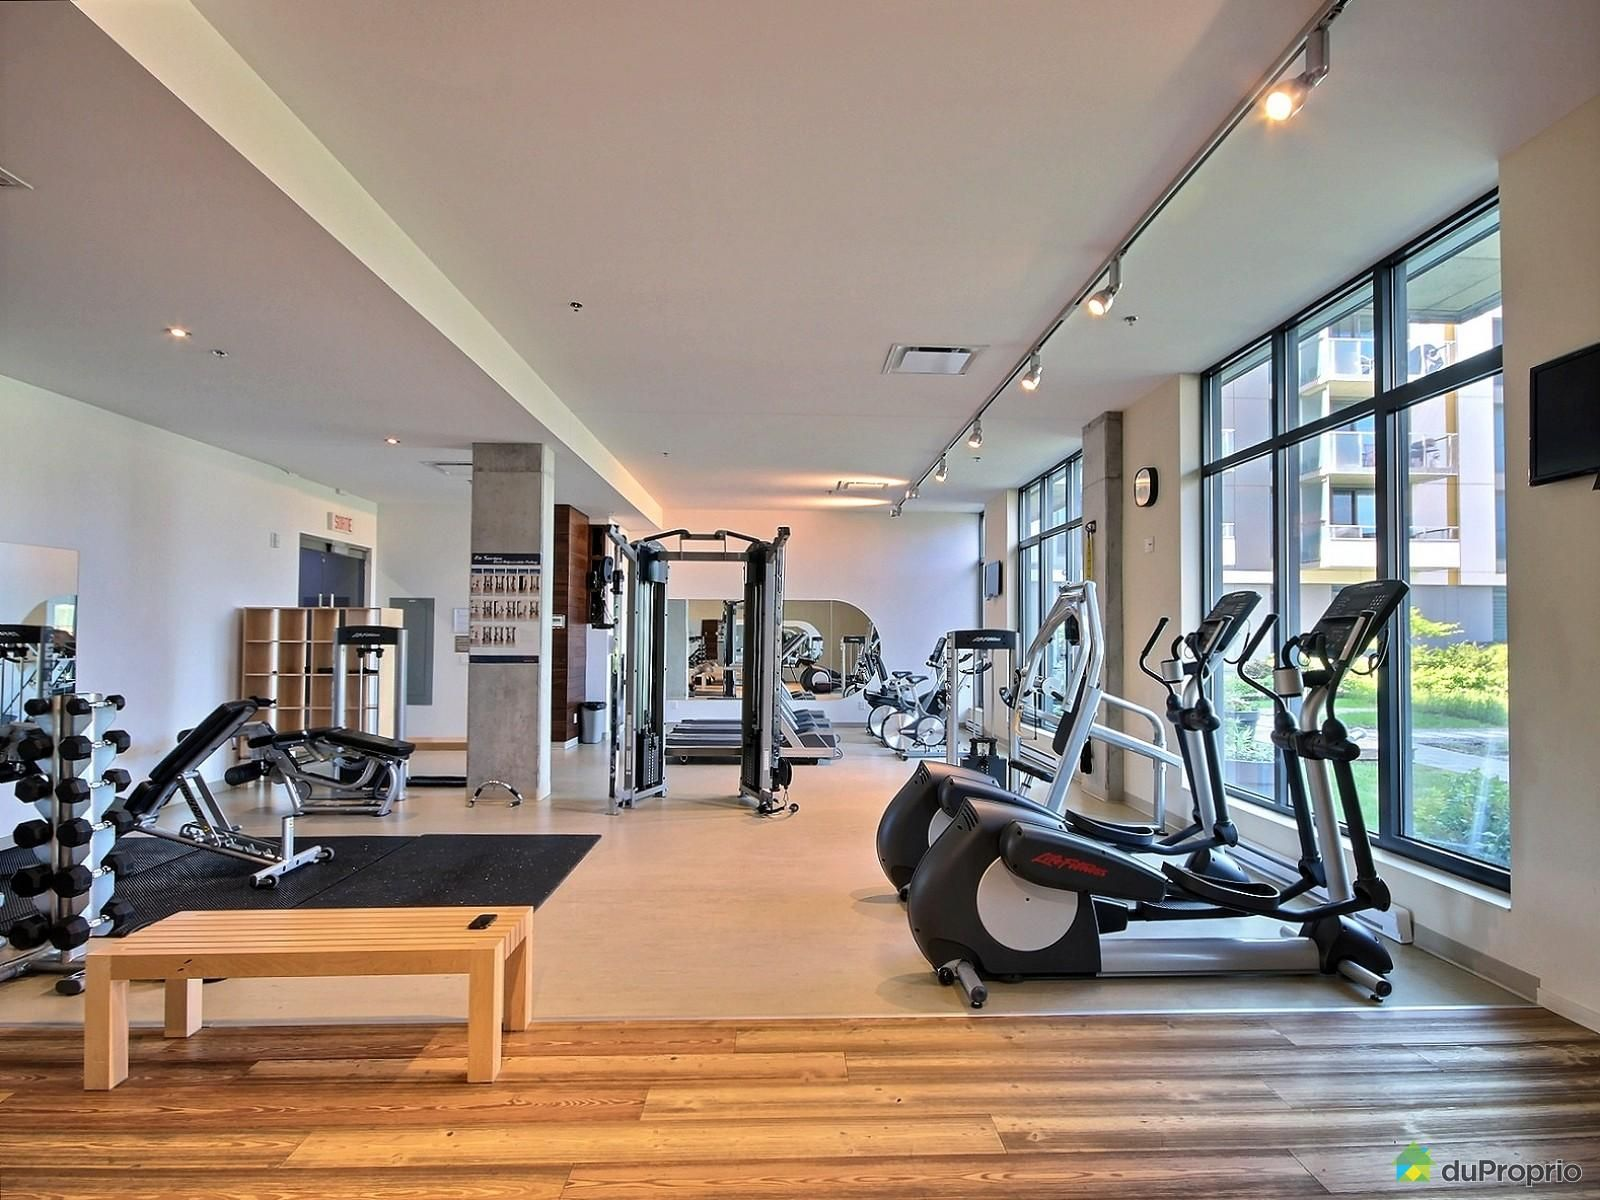 Condo Gym  Google Search